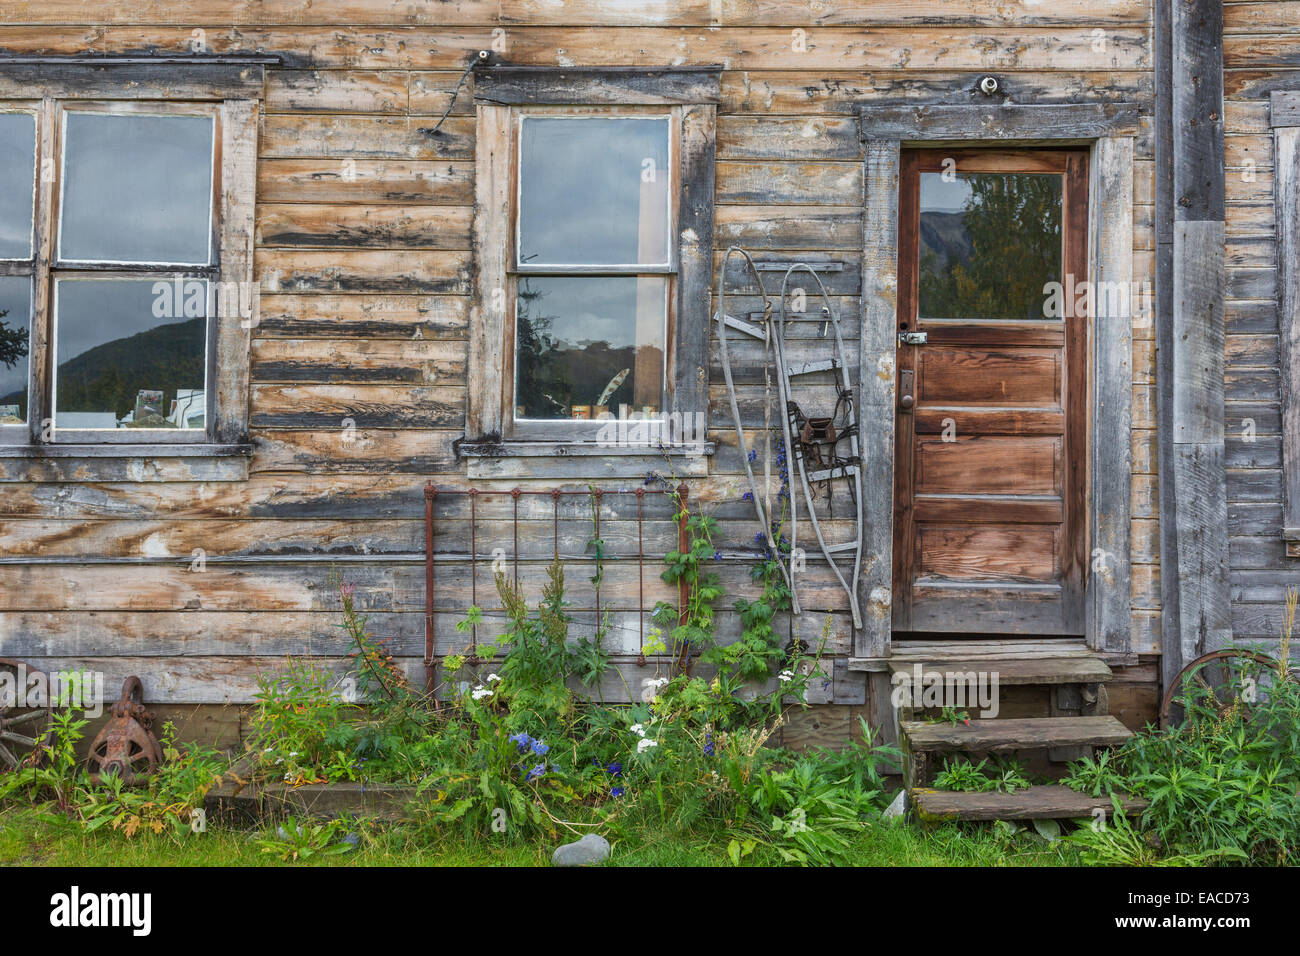 Old wooden house; McCarthy, Alaska, United States of America - Stock Image